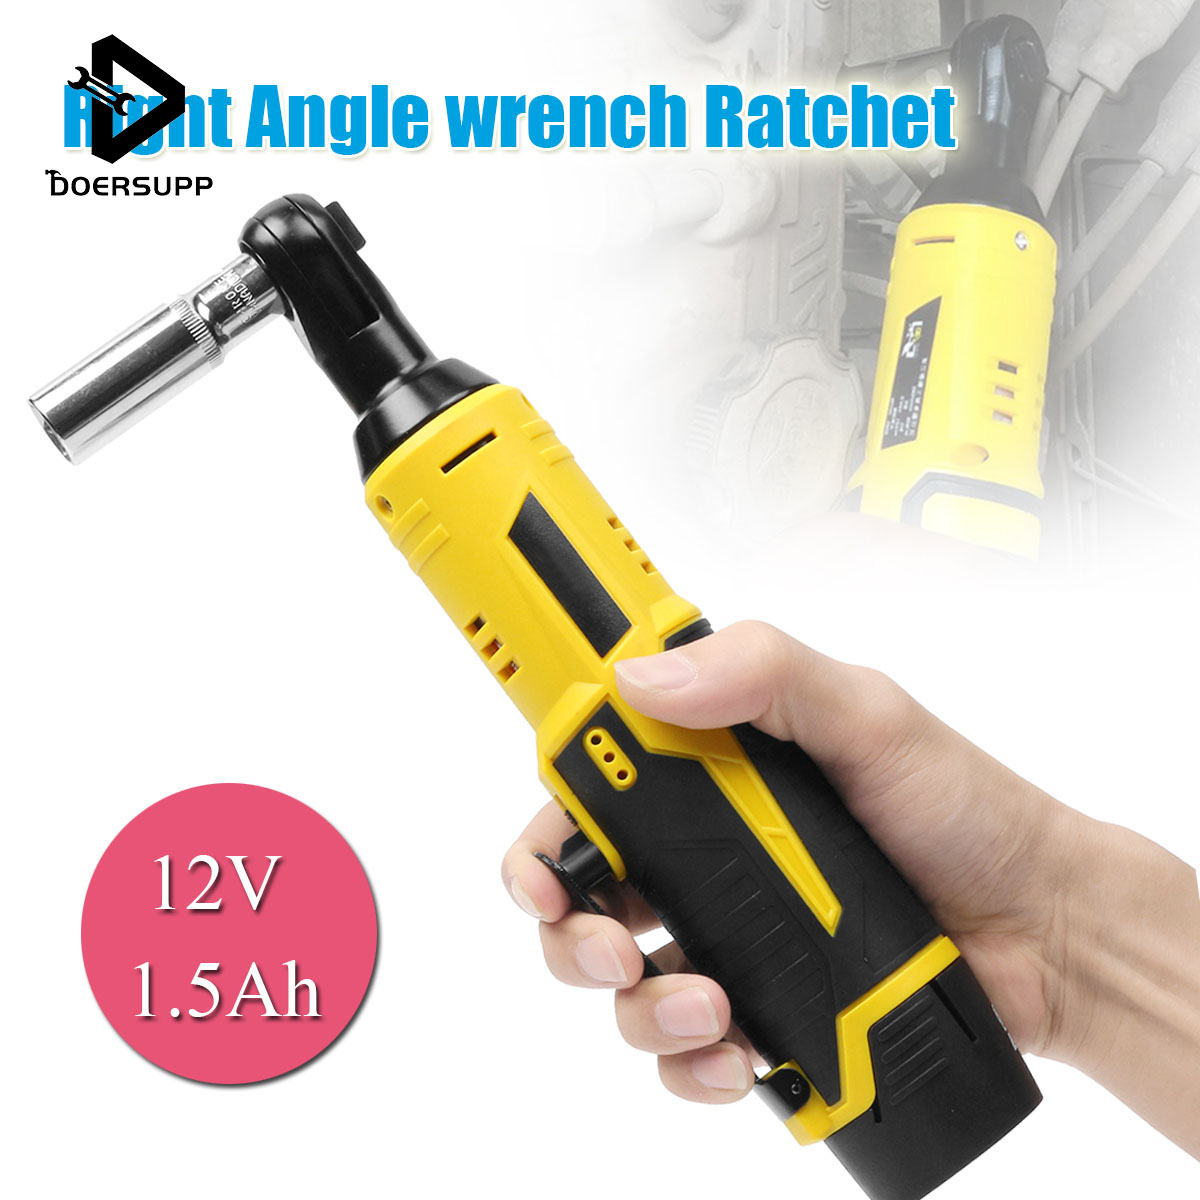 12V 35NM Cordless Electric Ratchet Wrench Rechargeable Right Angle Lithium-Ion Battery Wrench Tools with LED Light Car Repair12V 35NM Cordless Electric Ratchet Wrench Rechargeable Right Angle Lithium-Ion Battery Wrench Tools with LED Light Car Repair